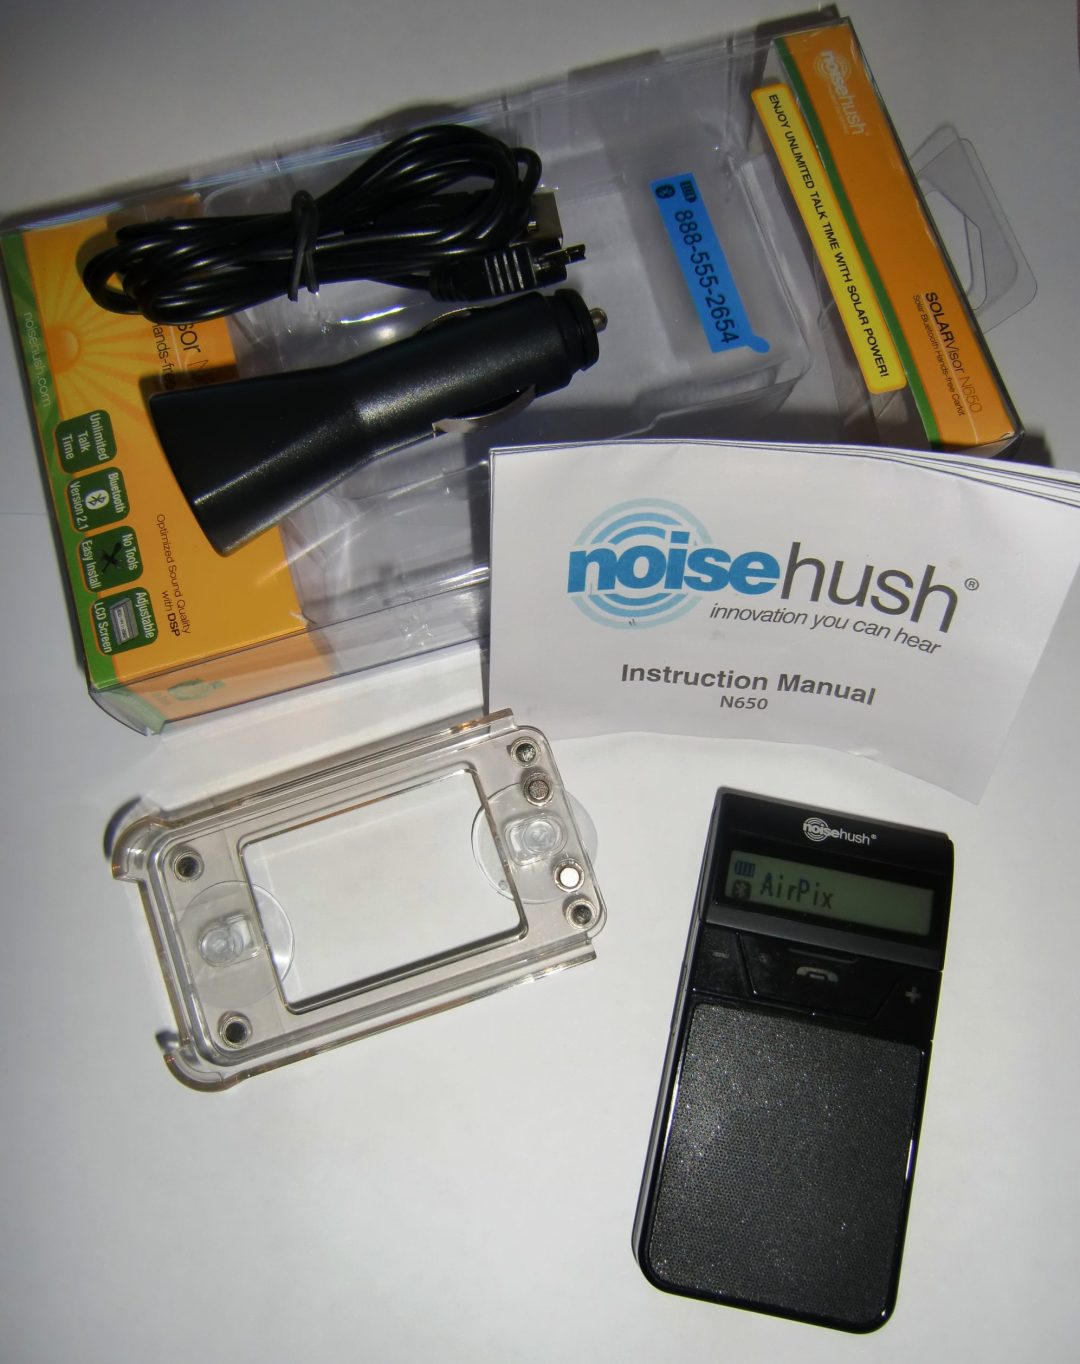 NoiseHush N650 Solar Speakerphone